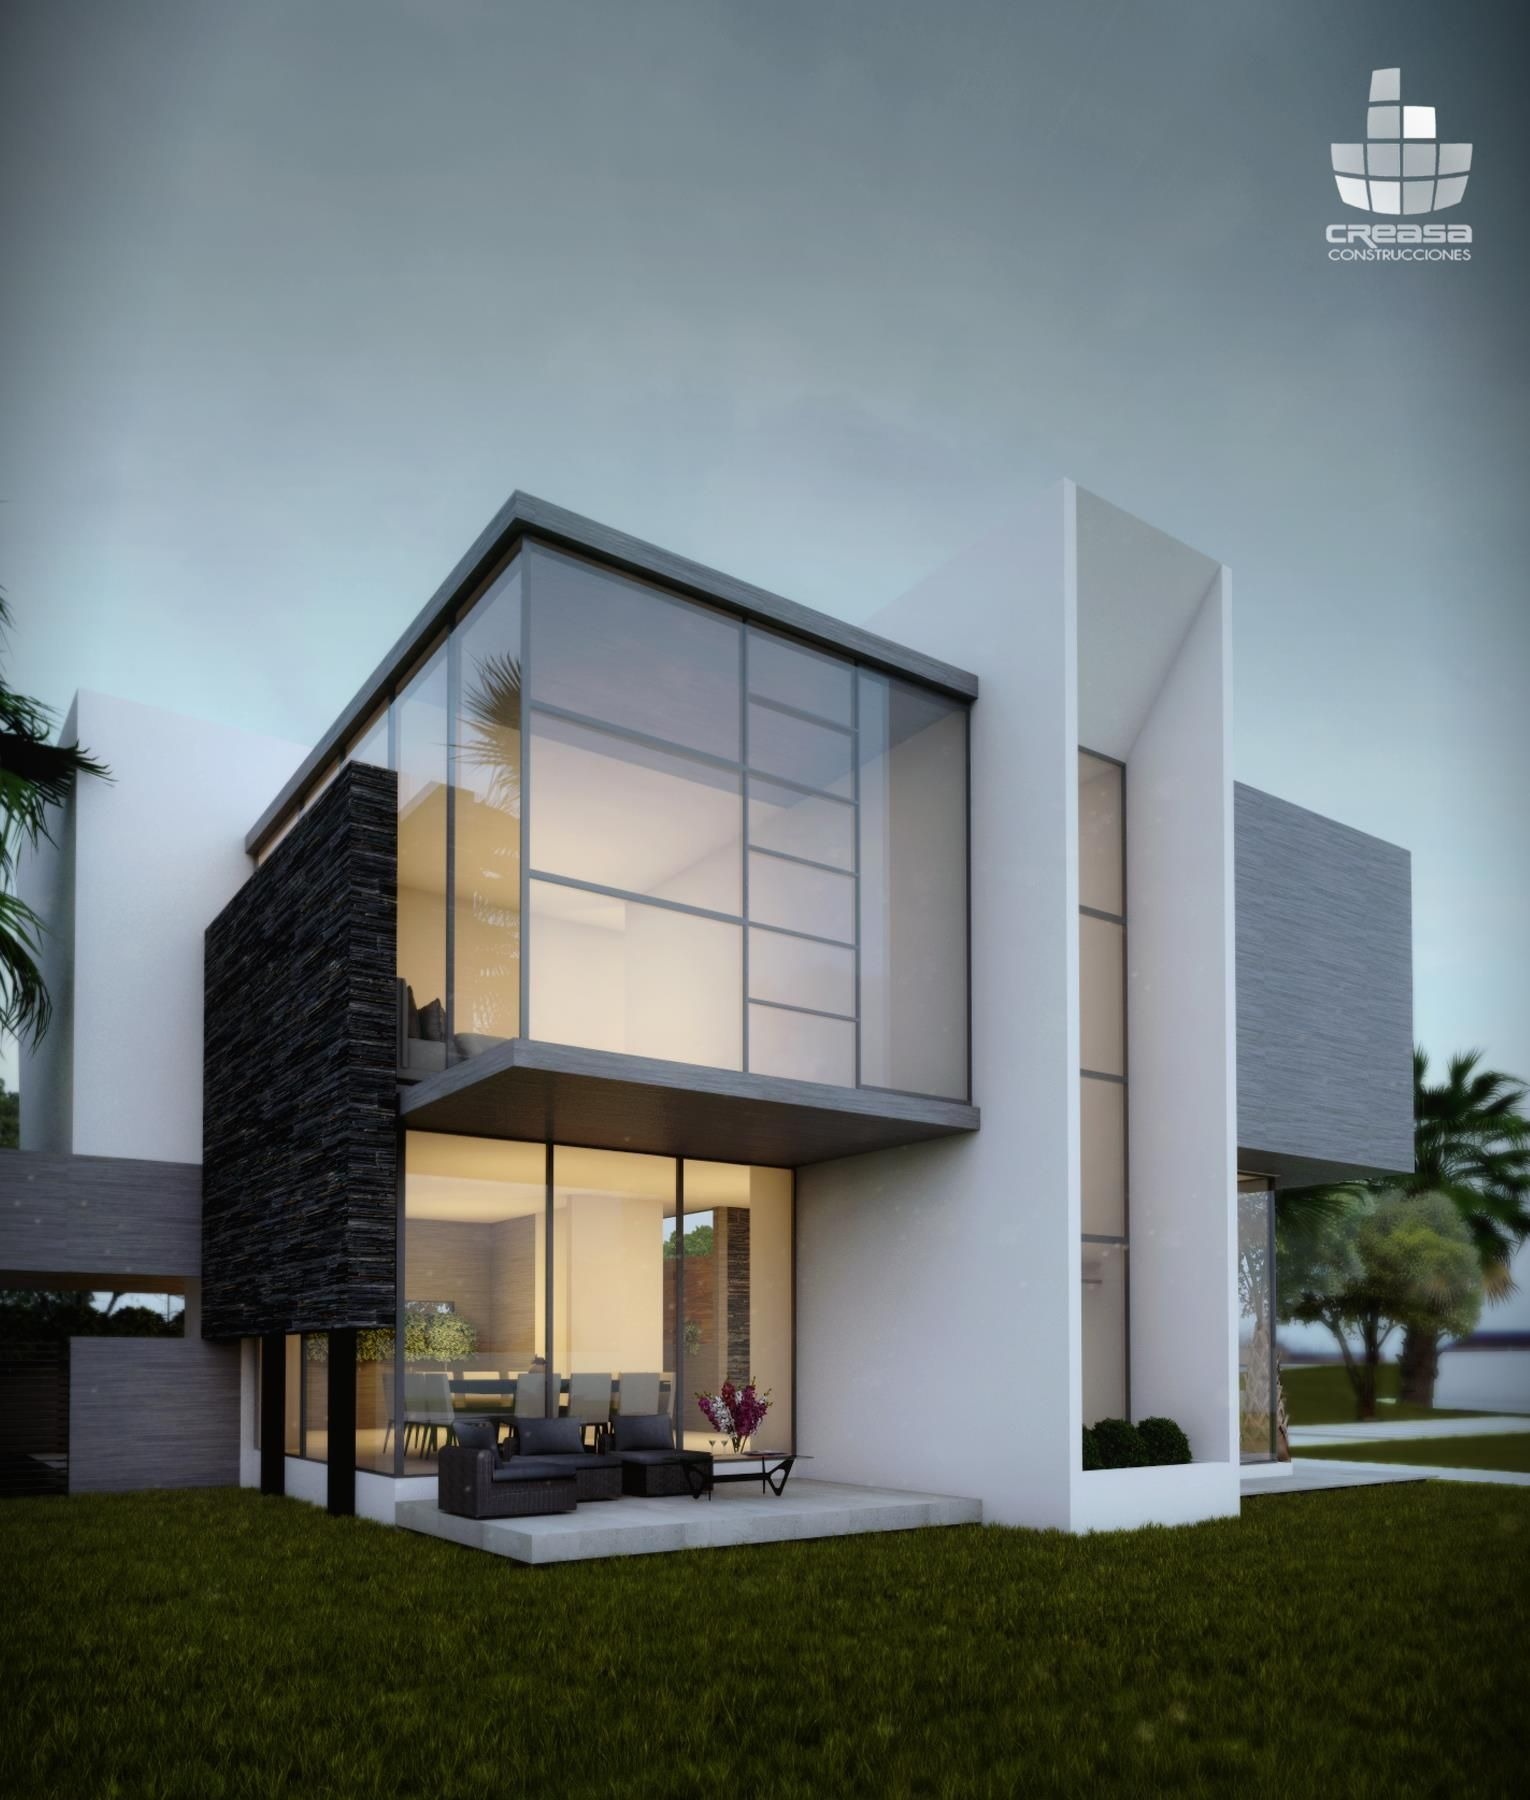 Creasa modern architecture pinterest villas house for Home architecture design online